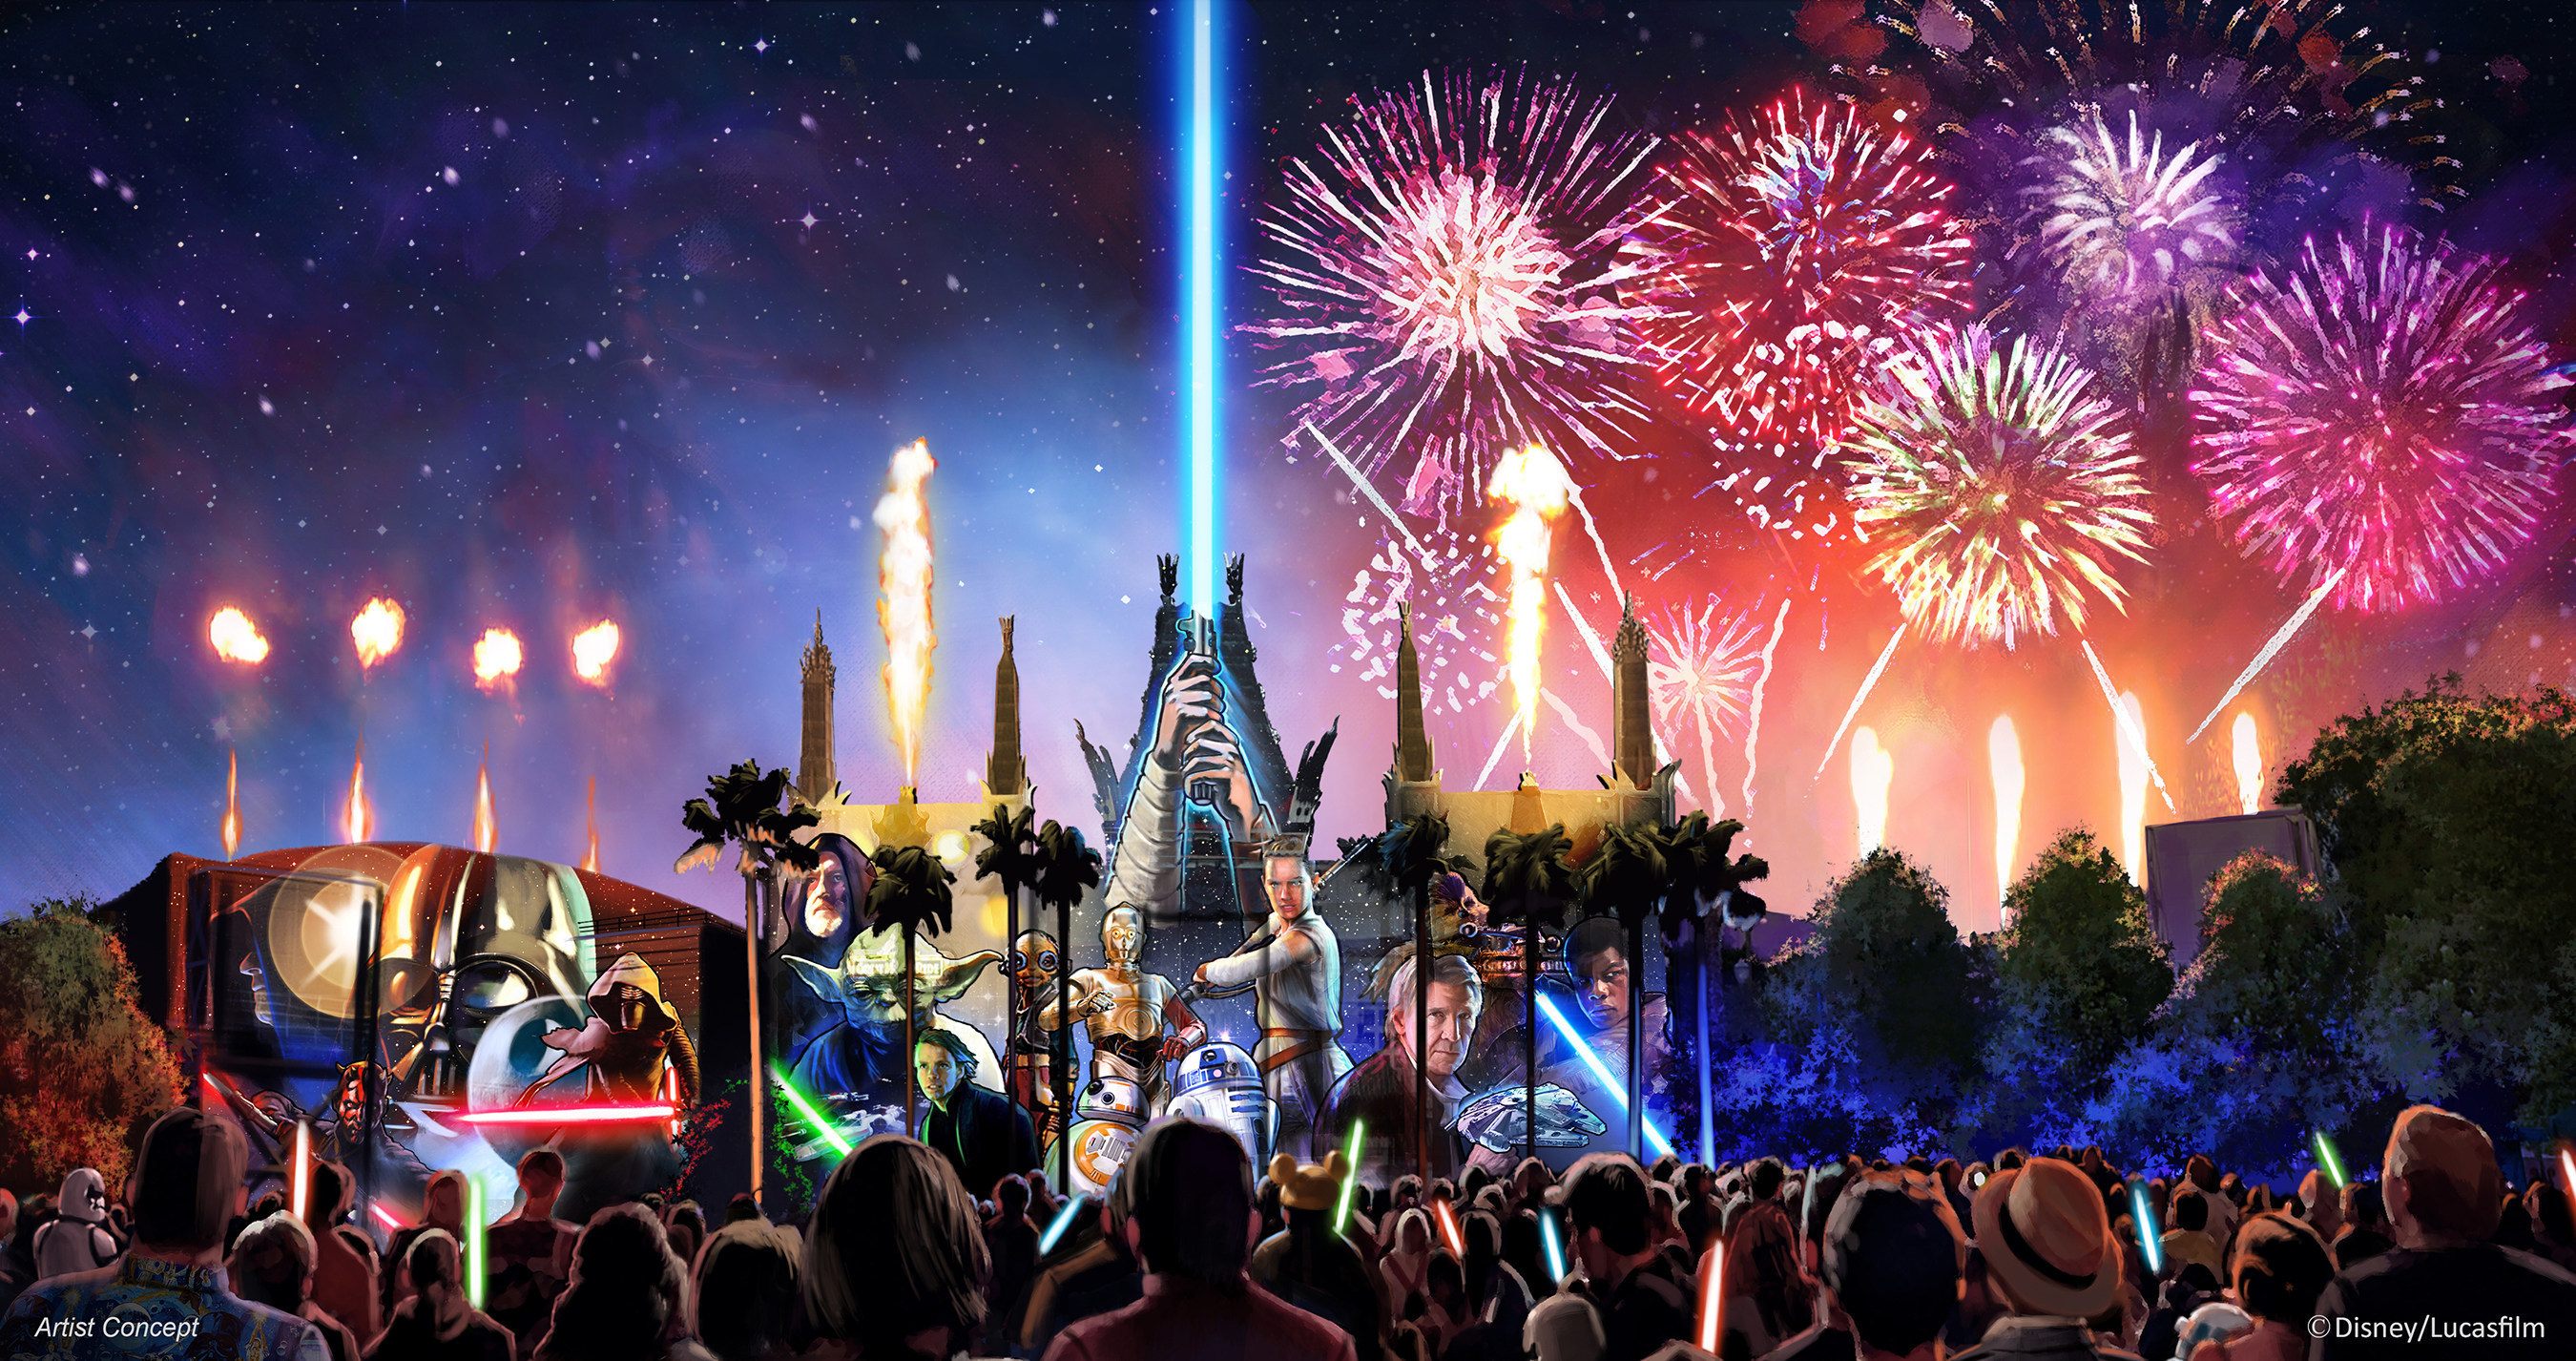 """Starting in summer 2016, a new Star Wars fireworks show, """"Star Wars: A Galactic Spectacular,"""" will debut to guests at Disney's Hollywood Studios. The nightly show will combine fireworks, pyrotechnics, special effects and video projections that will turn the nearby buildings into the twin suns of Tatooine, a field of battle droids, the trench of the Death Star, Starkiller Base and other Star Wars destinations. The show also will feature a tower of fire and spotlight beams, creating massive lightsabers in the sky. (Disney/Lucasfilm)"""